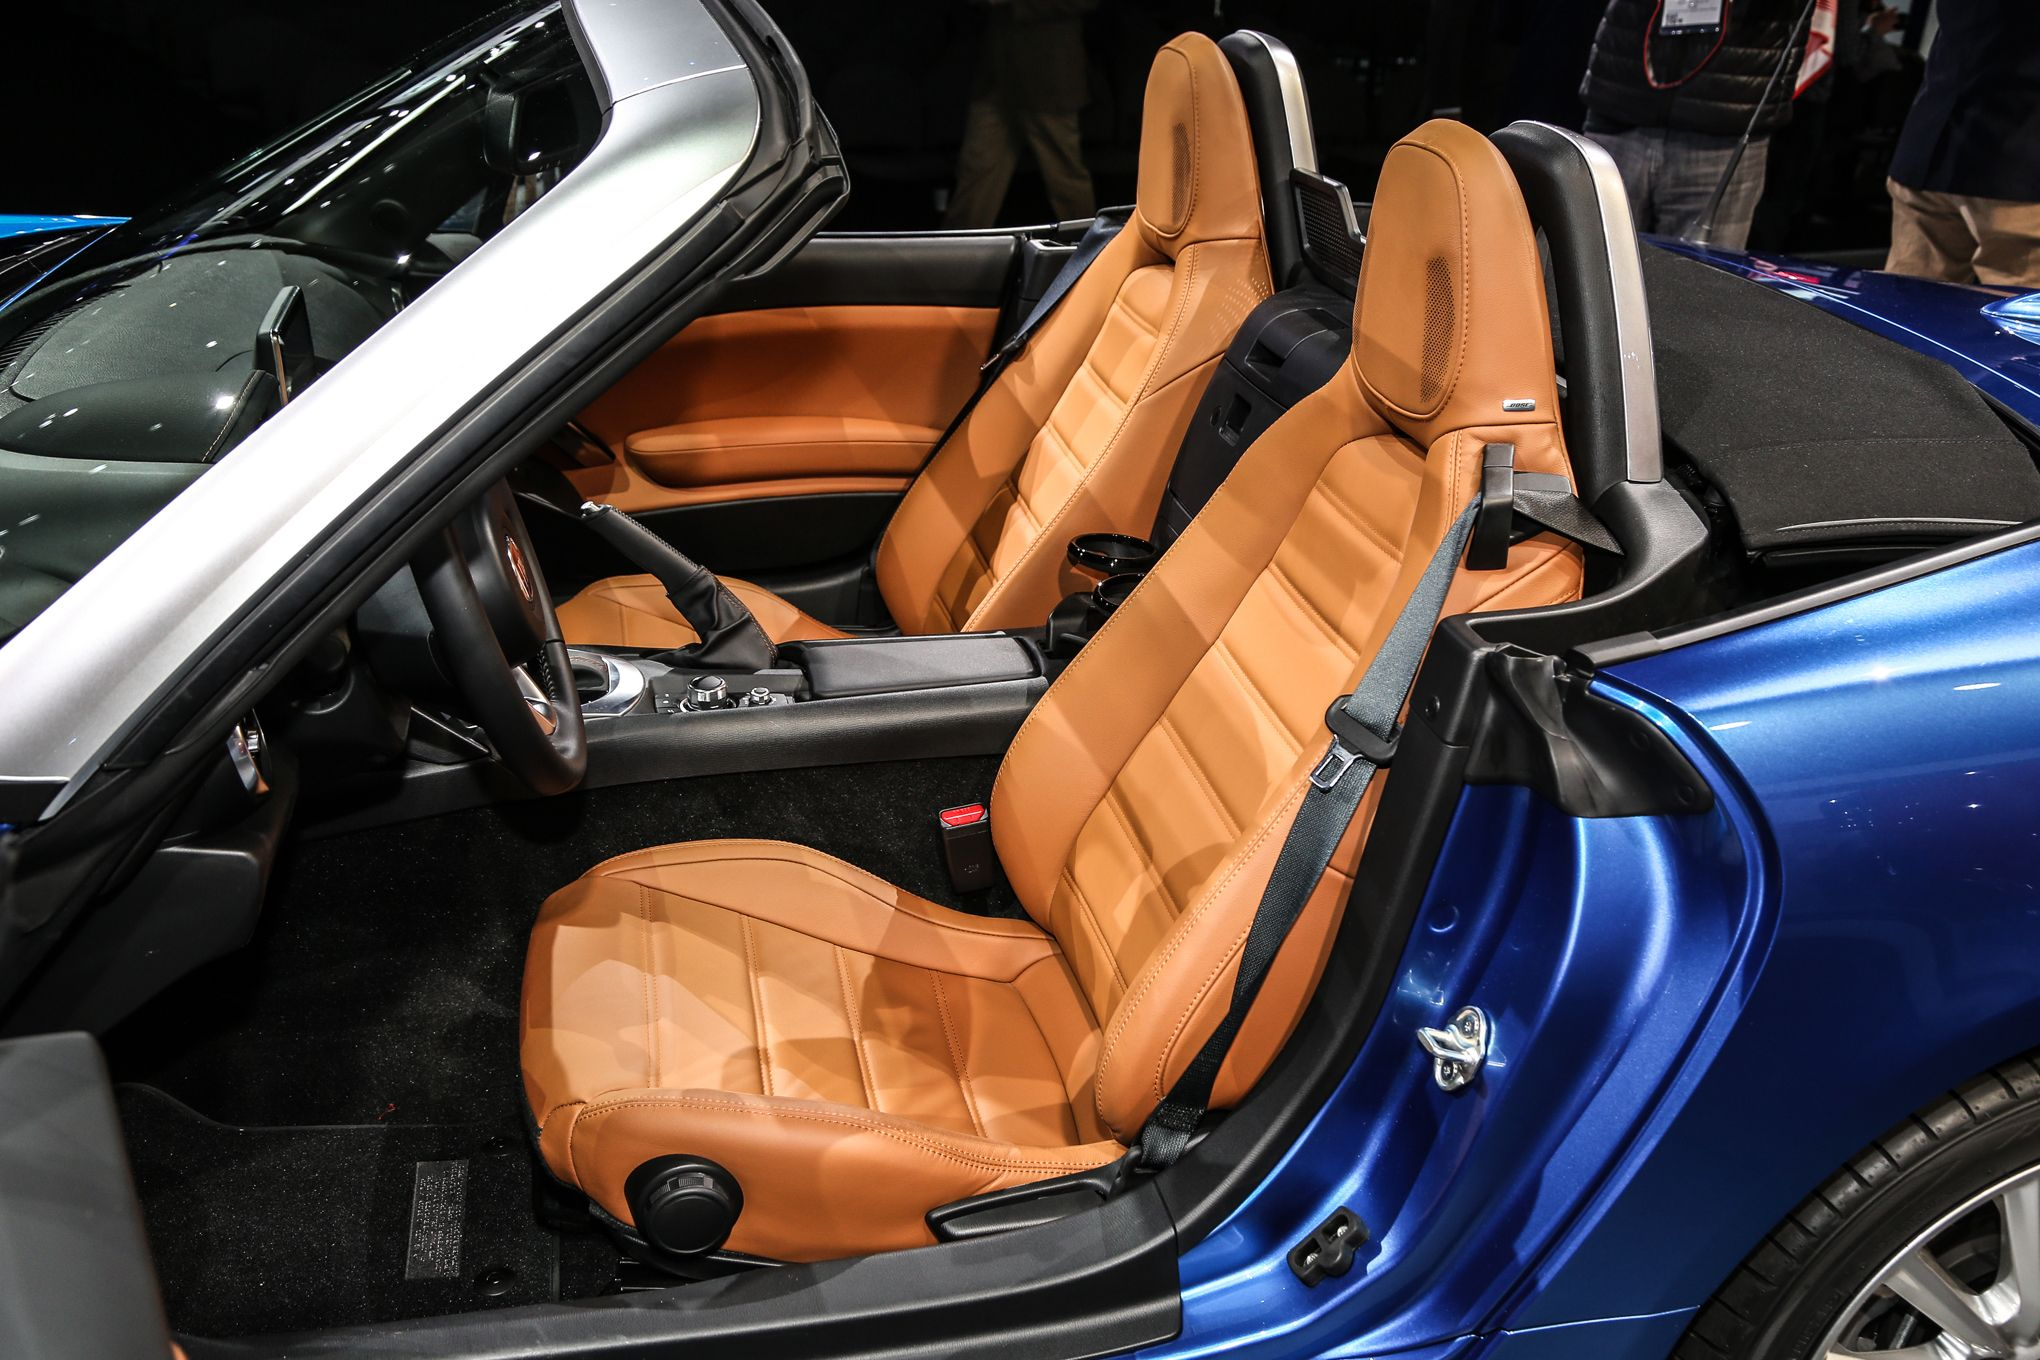 2017-fiat-124-spider-interior-seats.jpg